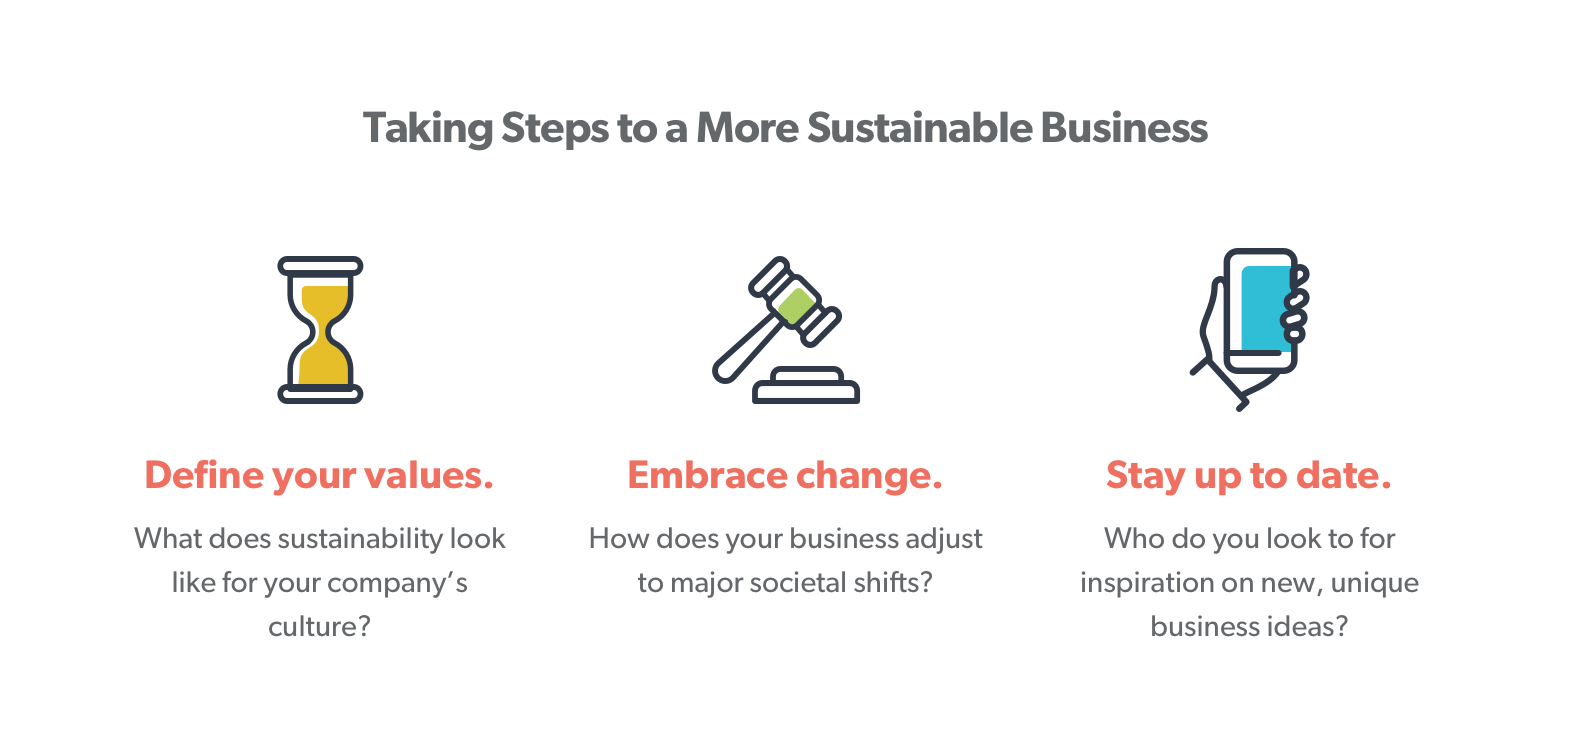 Taking steps to a more sustainable business… 1. Define your values: What does sustainability look like for your company's culture?  2. Embrace change: How does your business adjust to major societal shifts? 3. Stay up to date: Who do you look to for inspiration on new, unique business ideas?